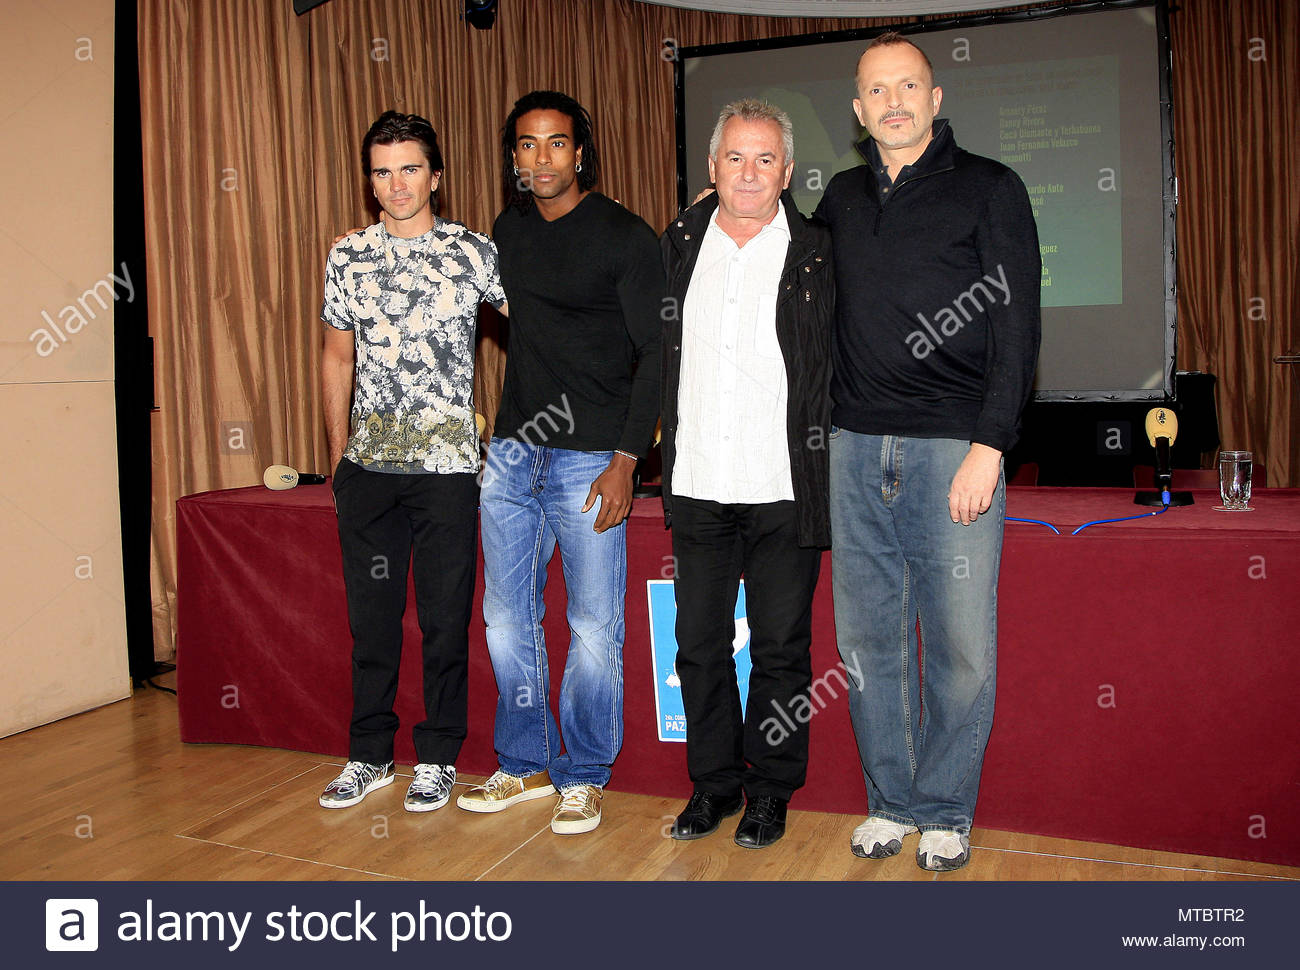 ¿Cuánto mide Juanes? - Altura - Real height Juanes-miguel-bose-victor-manuel-and-yotuel-launching-of-the-concert-peace-without-frontiers-in-madrid-MTBTR2